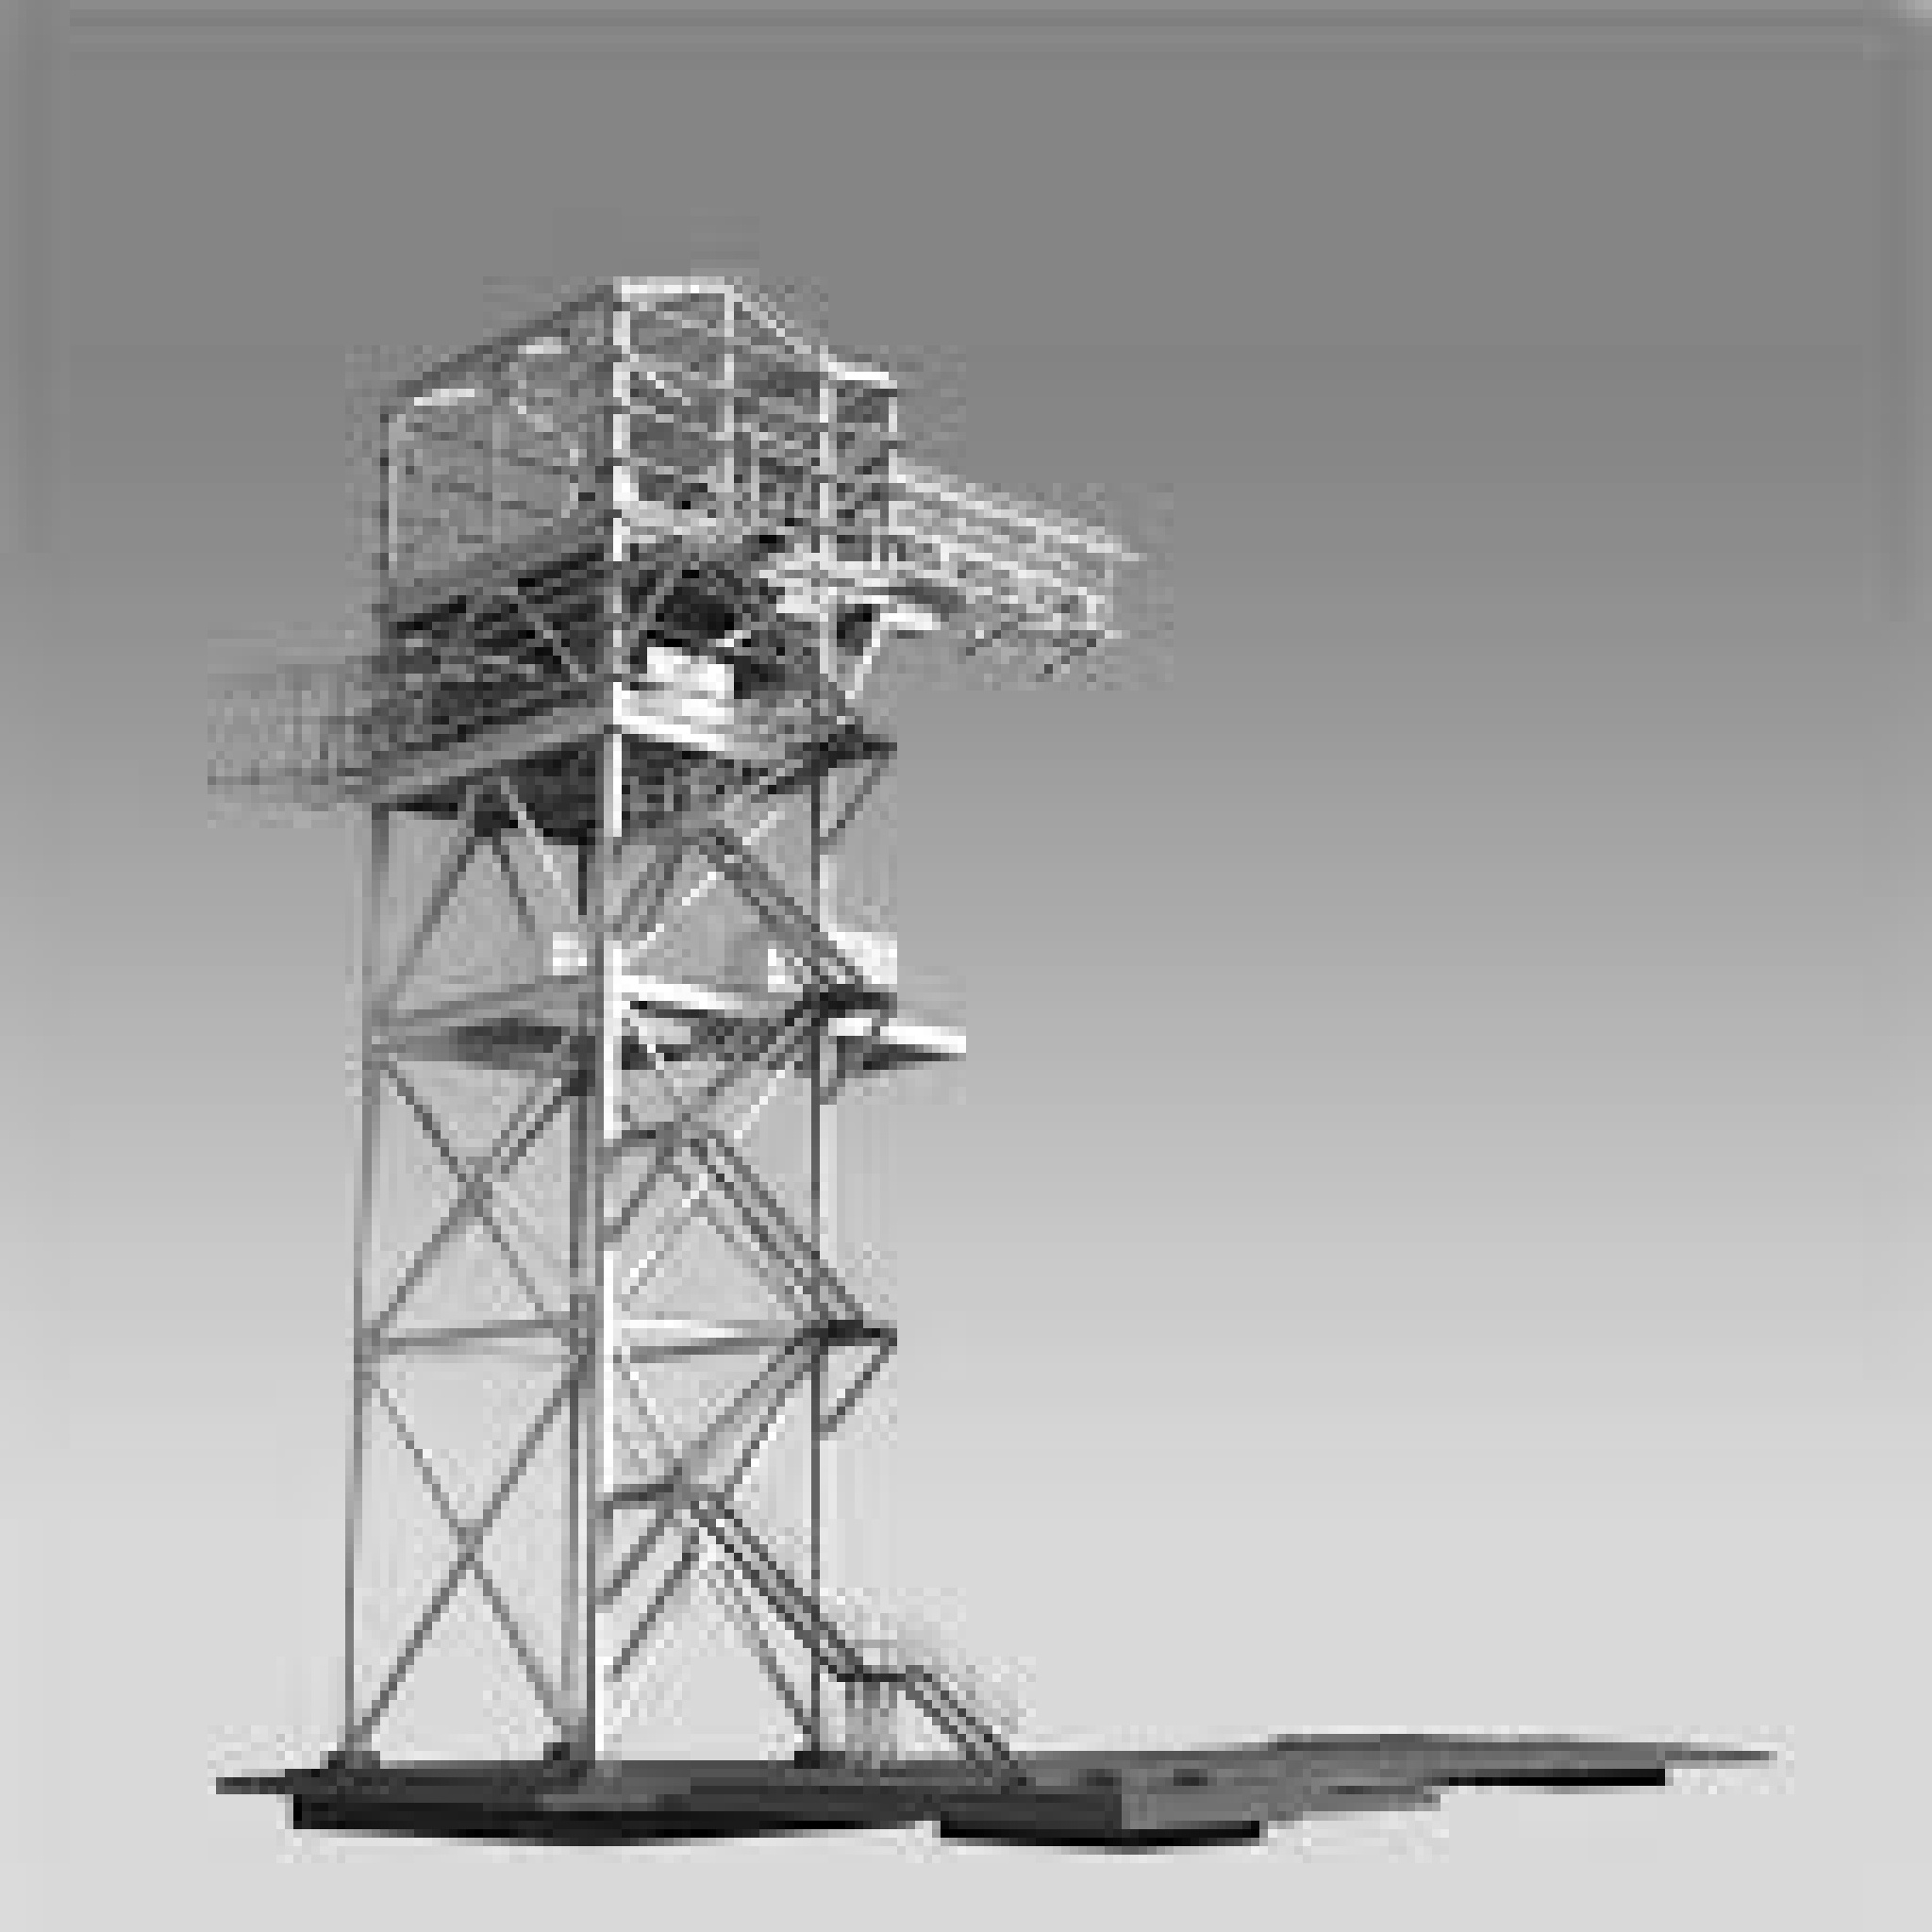 Design and Detailing For Engineering Project by ebrandingsp02